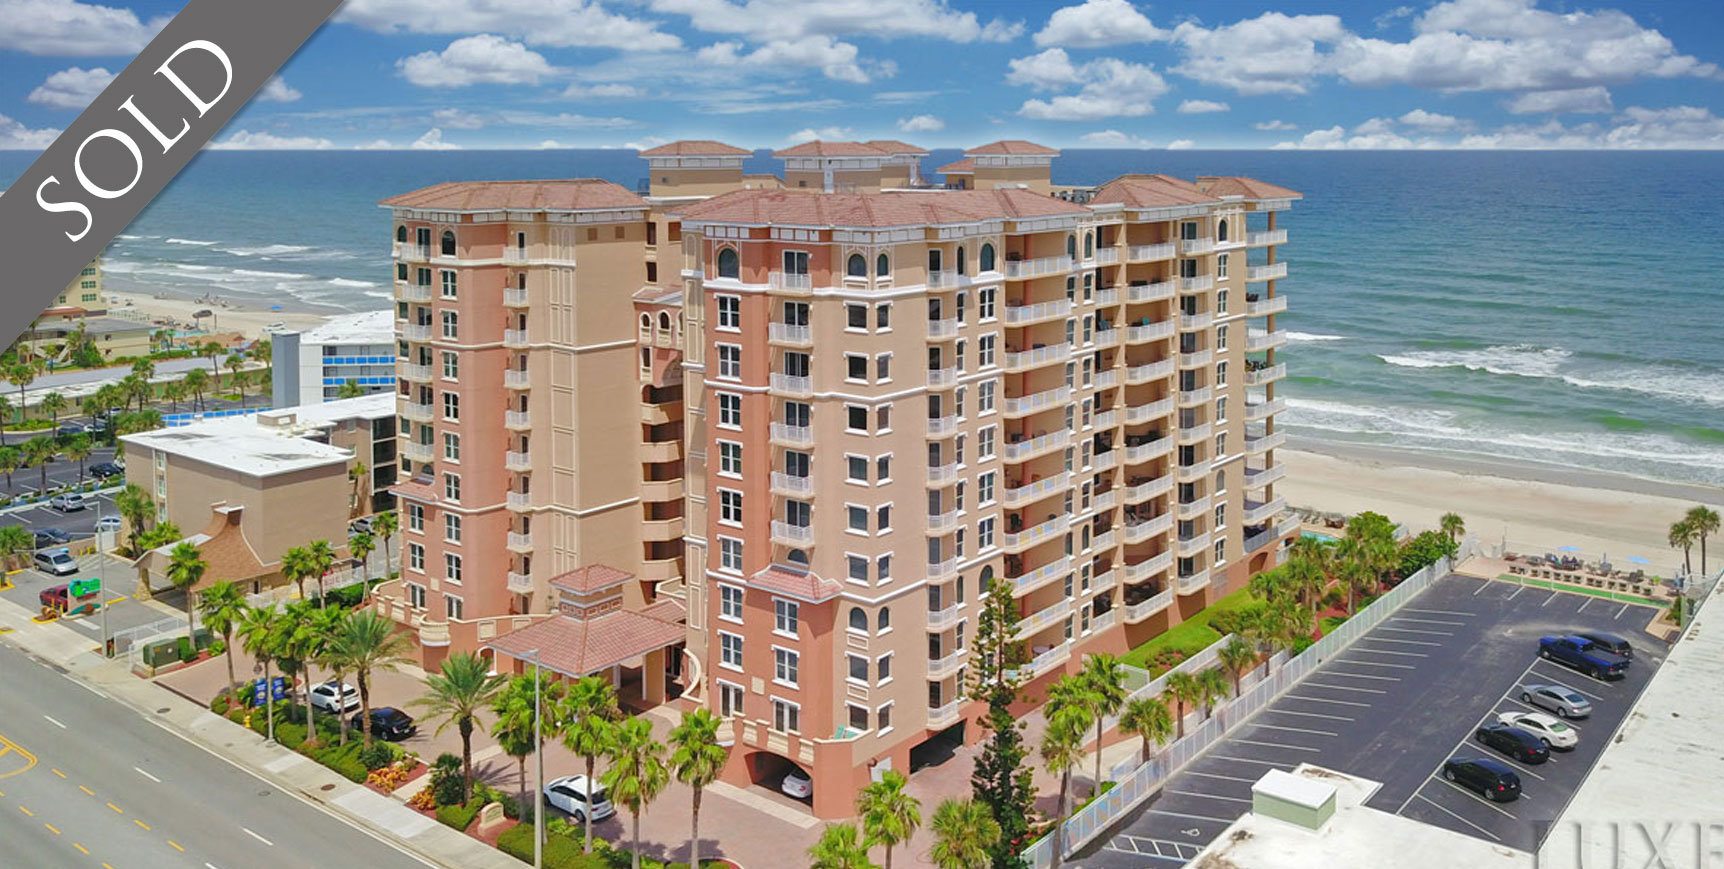 Palma Bella oceanfront condos For Sale at 3245 S Atlantic Ave Daytona Beach  Shores The LUXE Group 386-299-4043